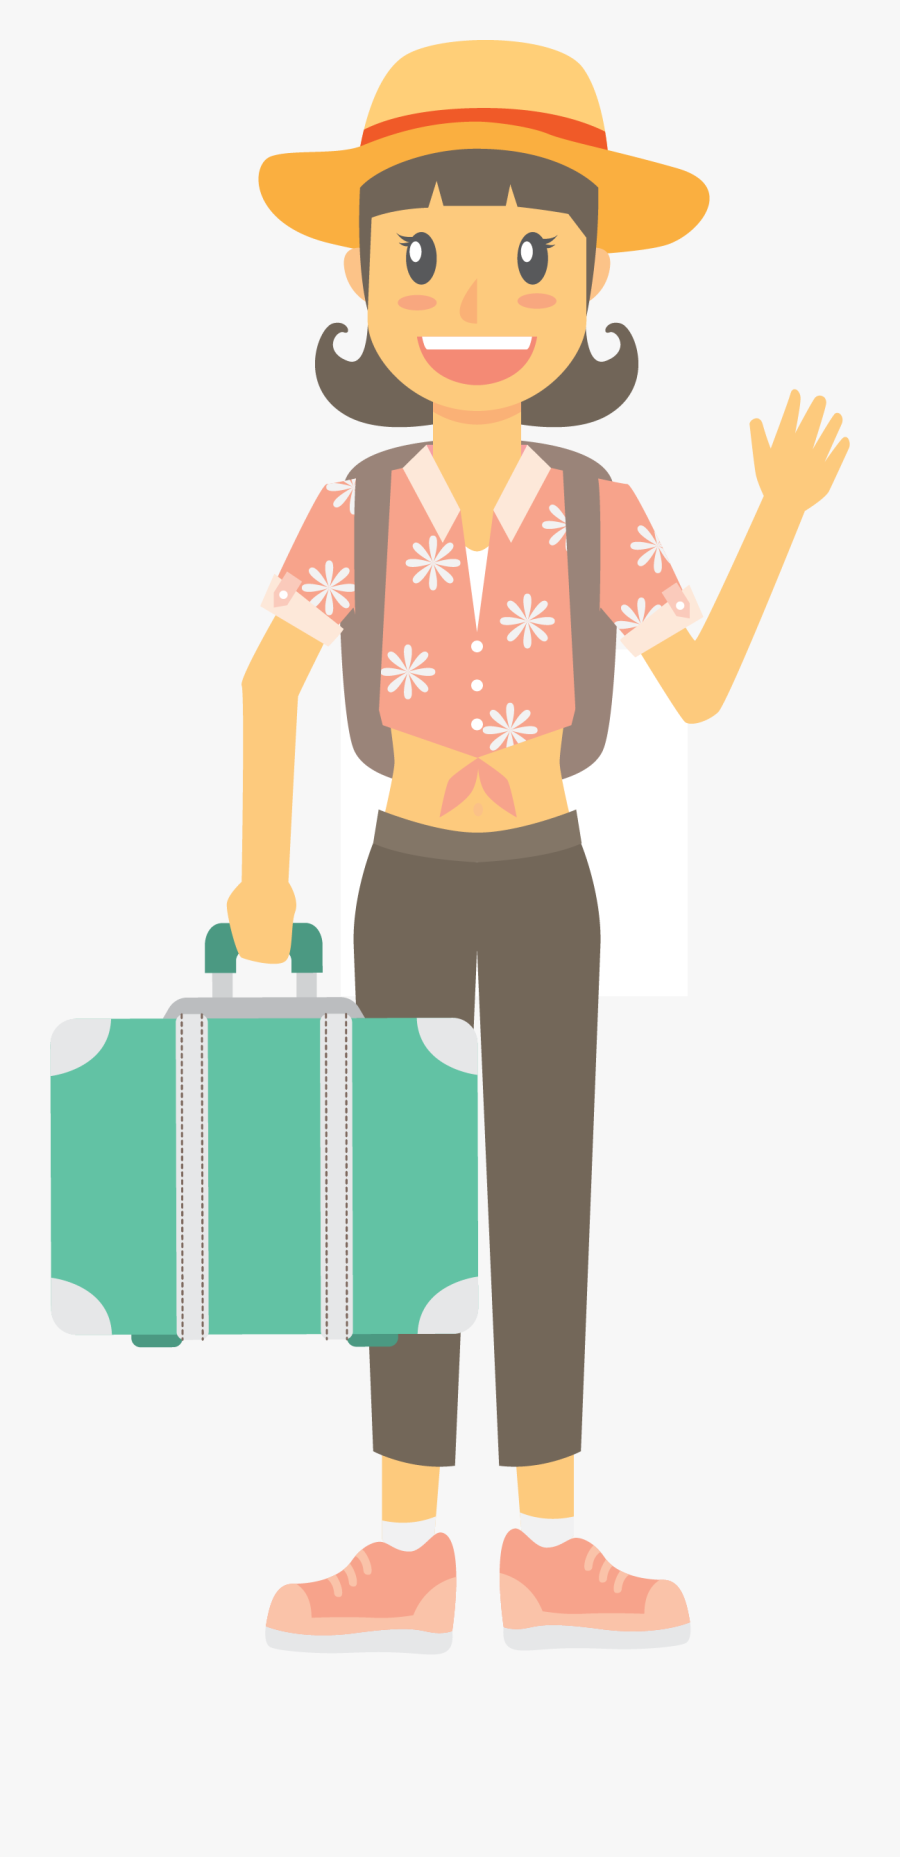 On Summer Seaside Holidays Infographic In Tourism Clipart - Cartoon Tourist Transparent Background, Transparent Clipart